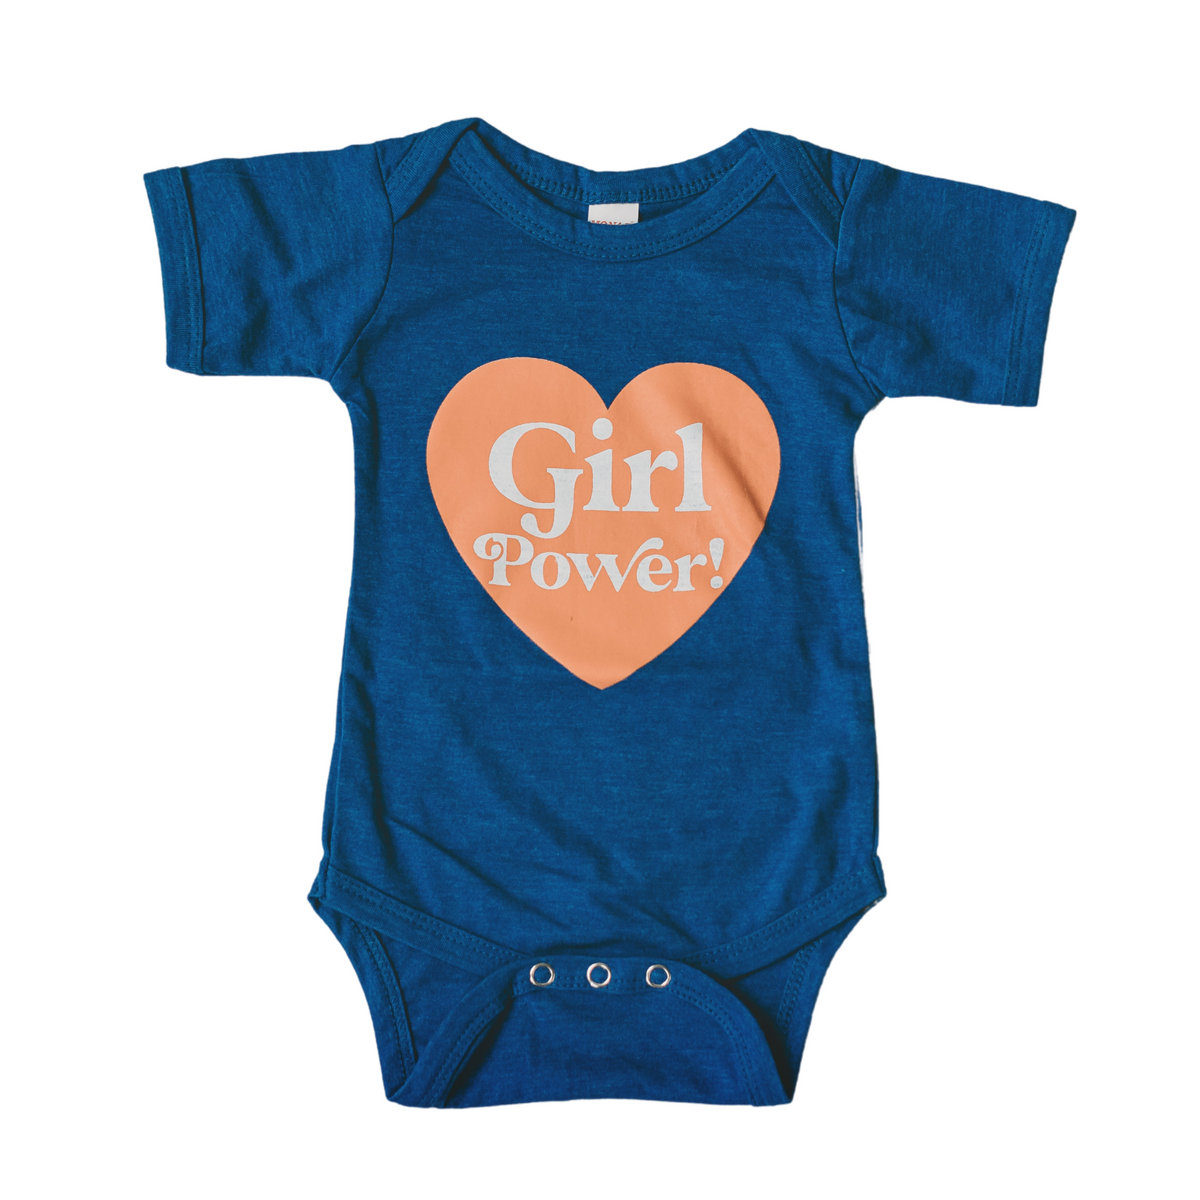 Girl Power baby bodysuit - 10% sales donated to Girls INC.